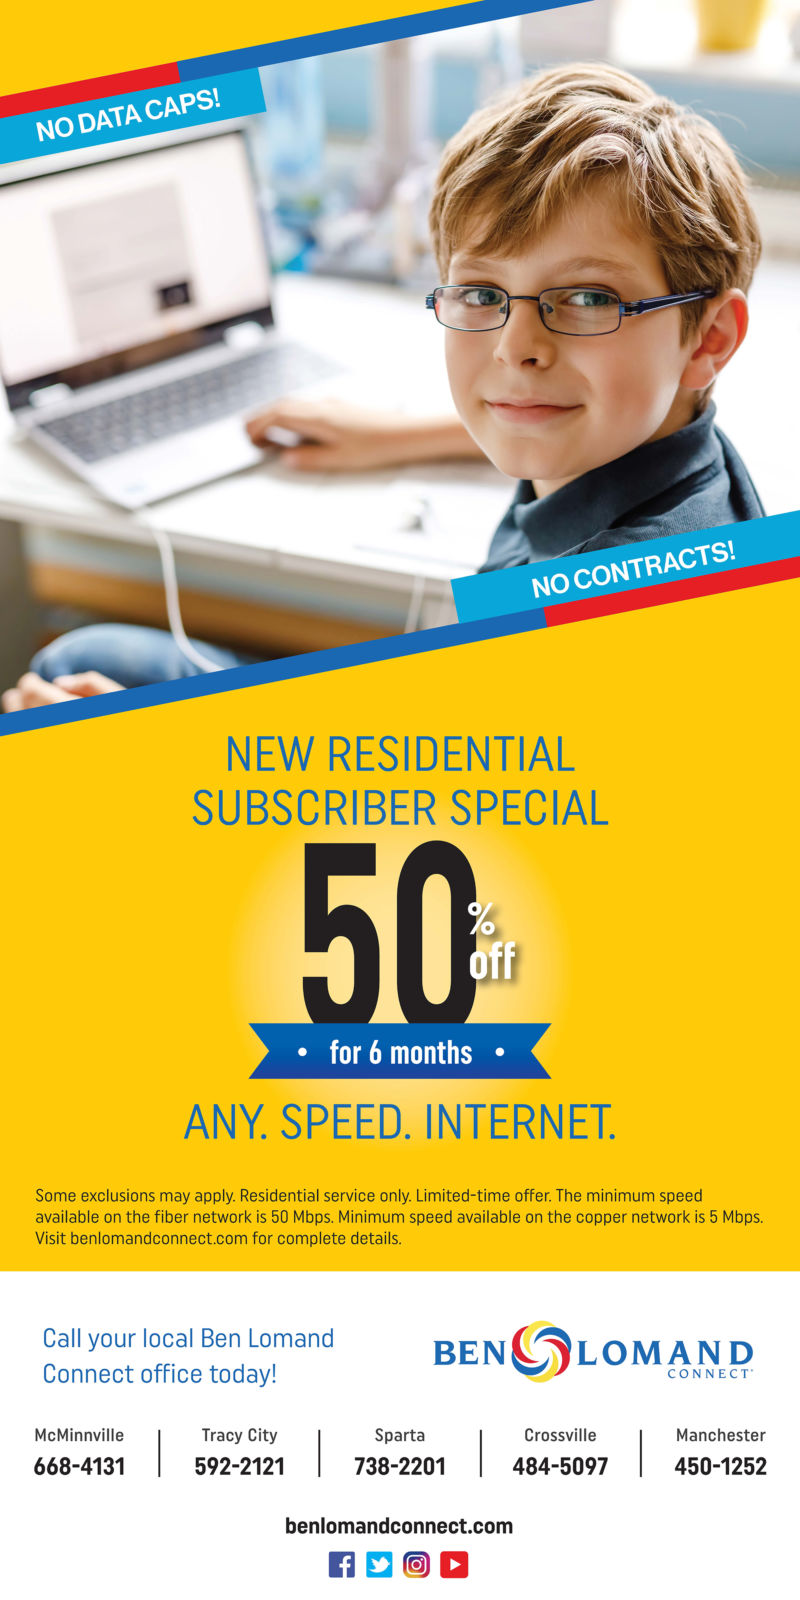 ad for new residential subscriber special for 50% off any speed internet